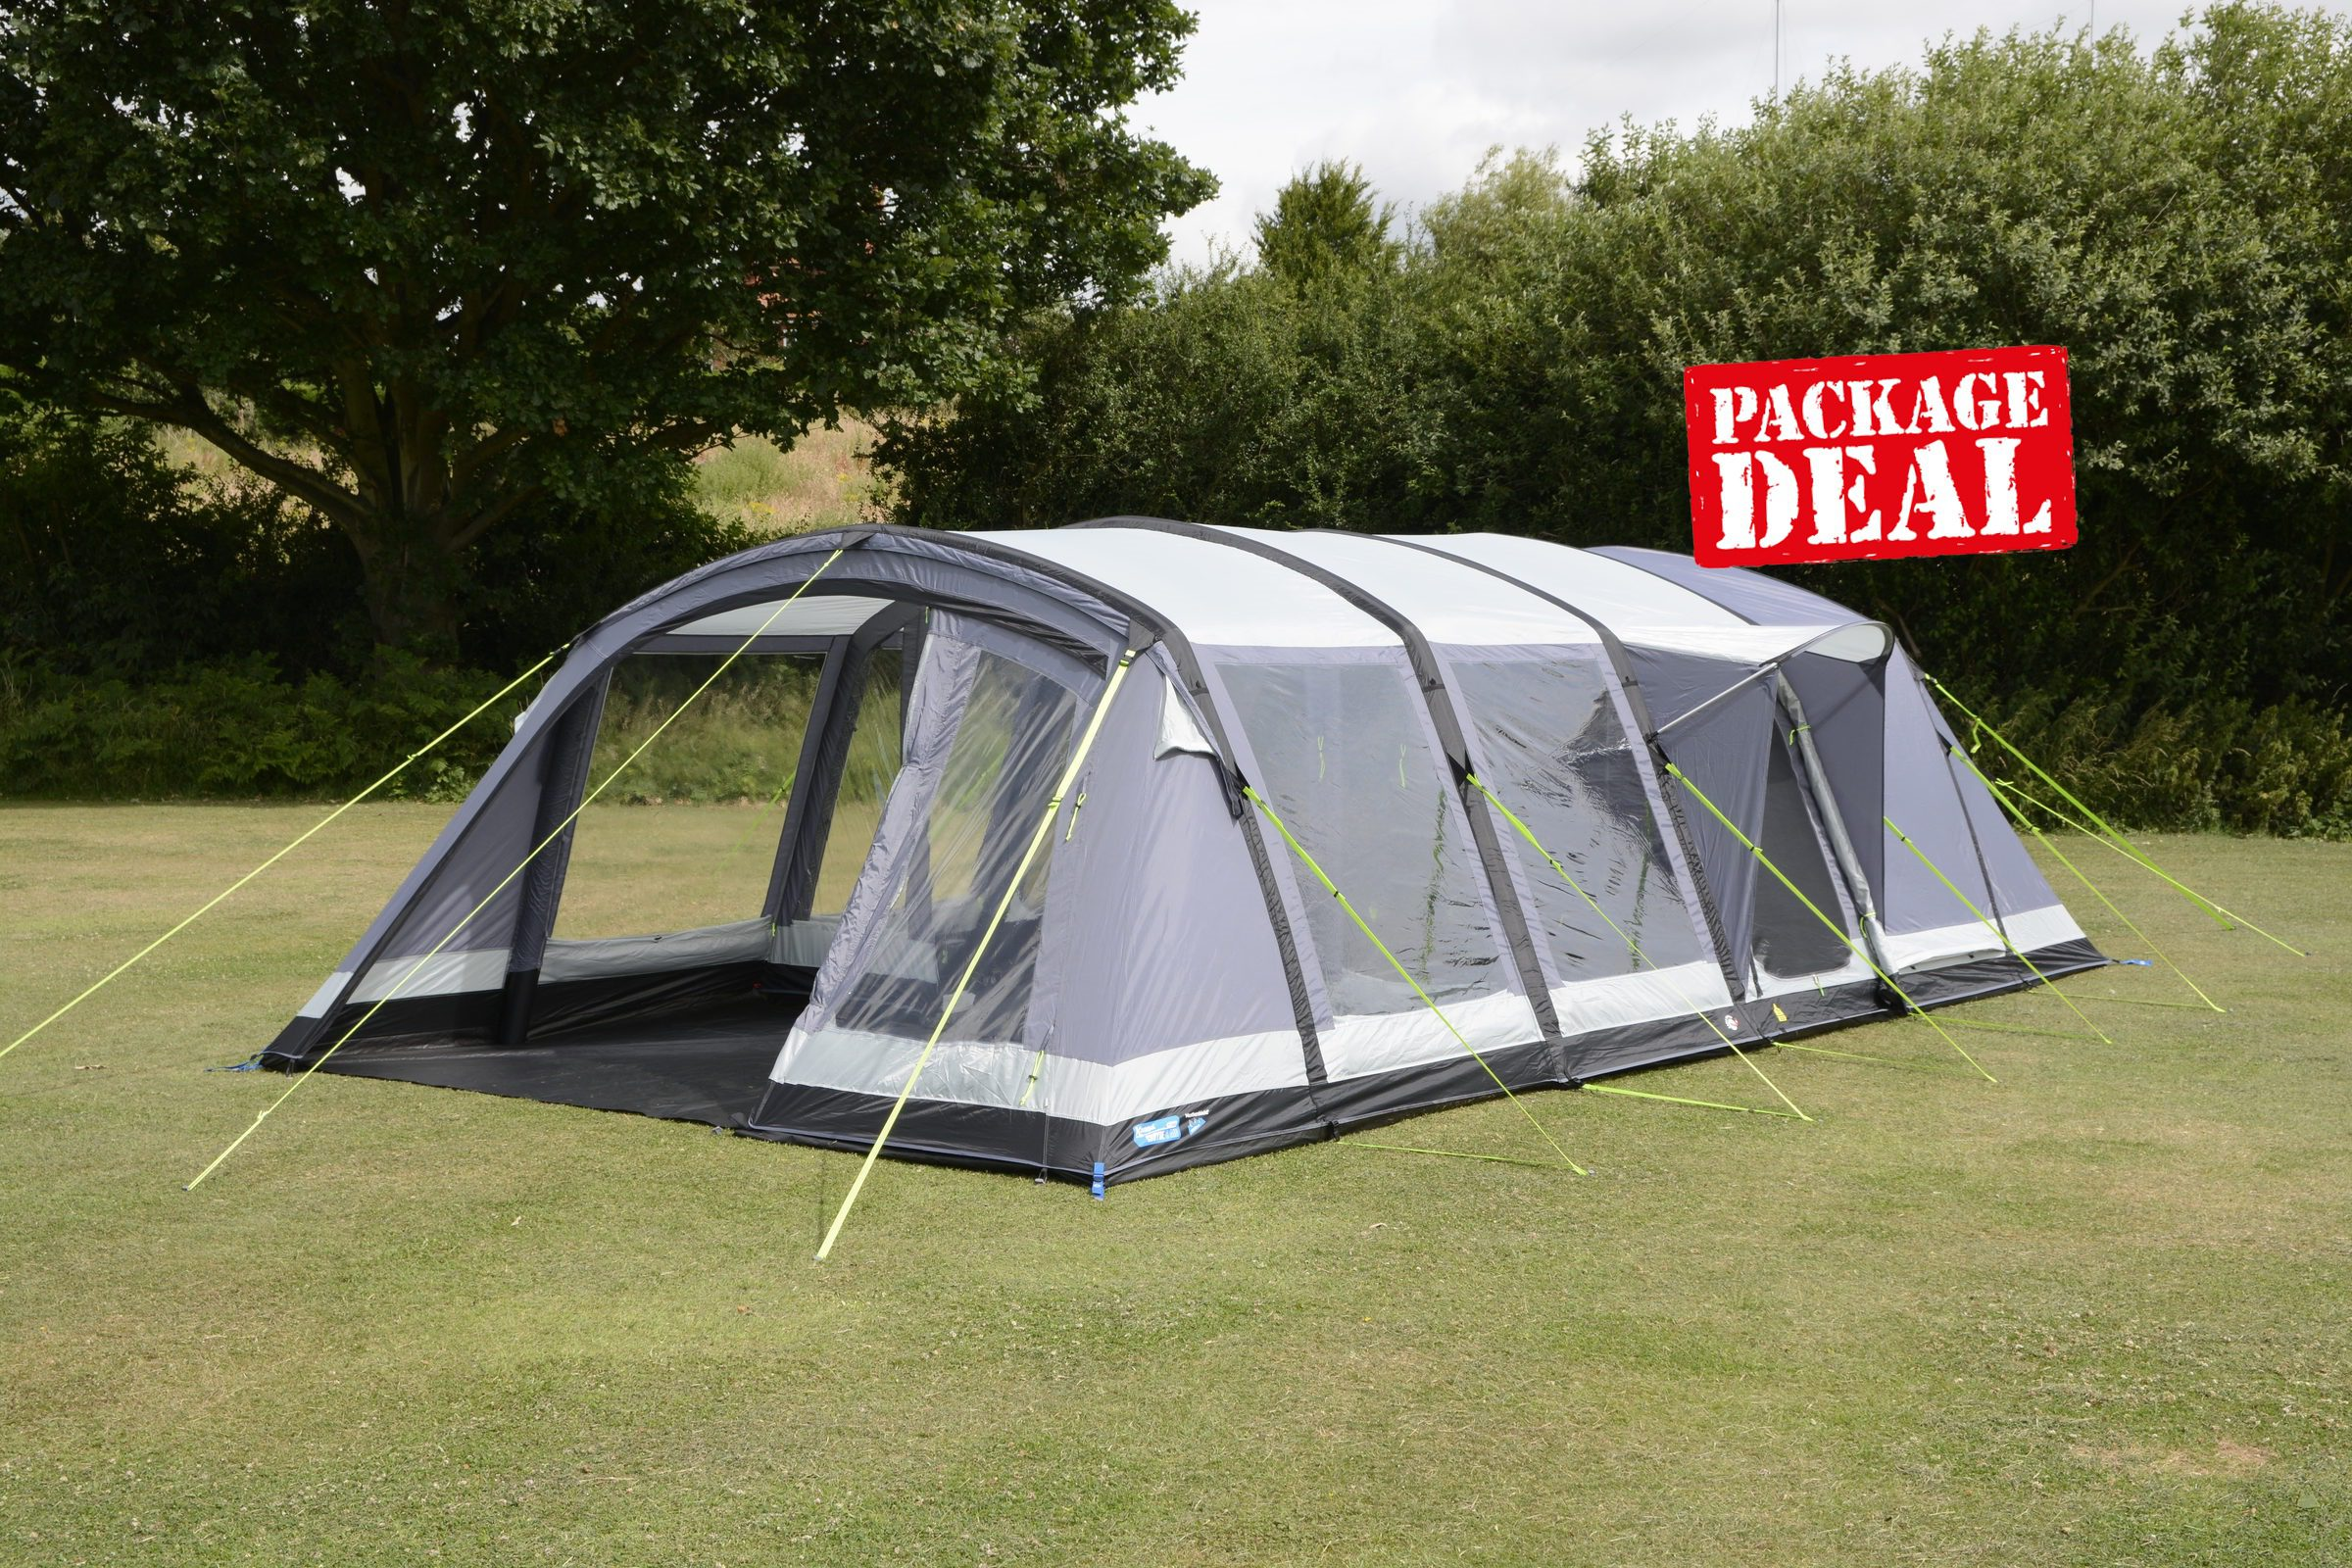 K&a Croyde 6 Air Pro Tent Package Deal & Kampa Croyde 6 Air Pro Tent Package Deal 2018 | Inflatable Tents ...